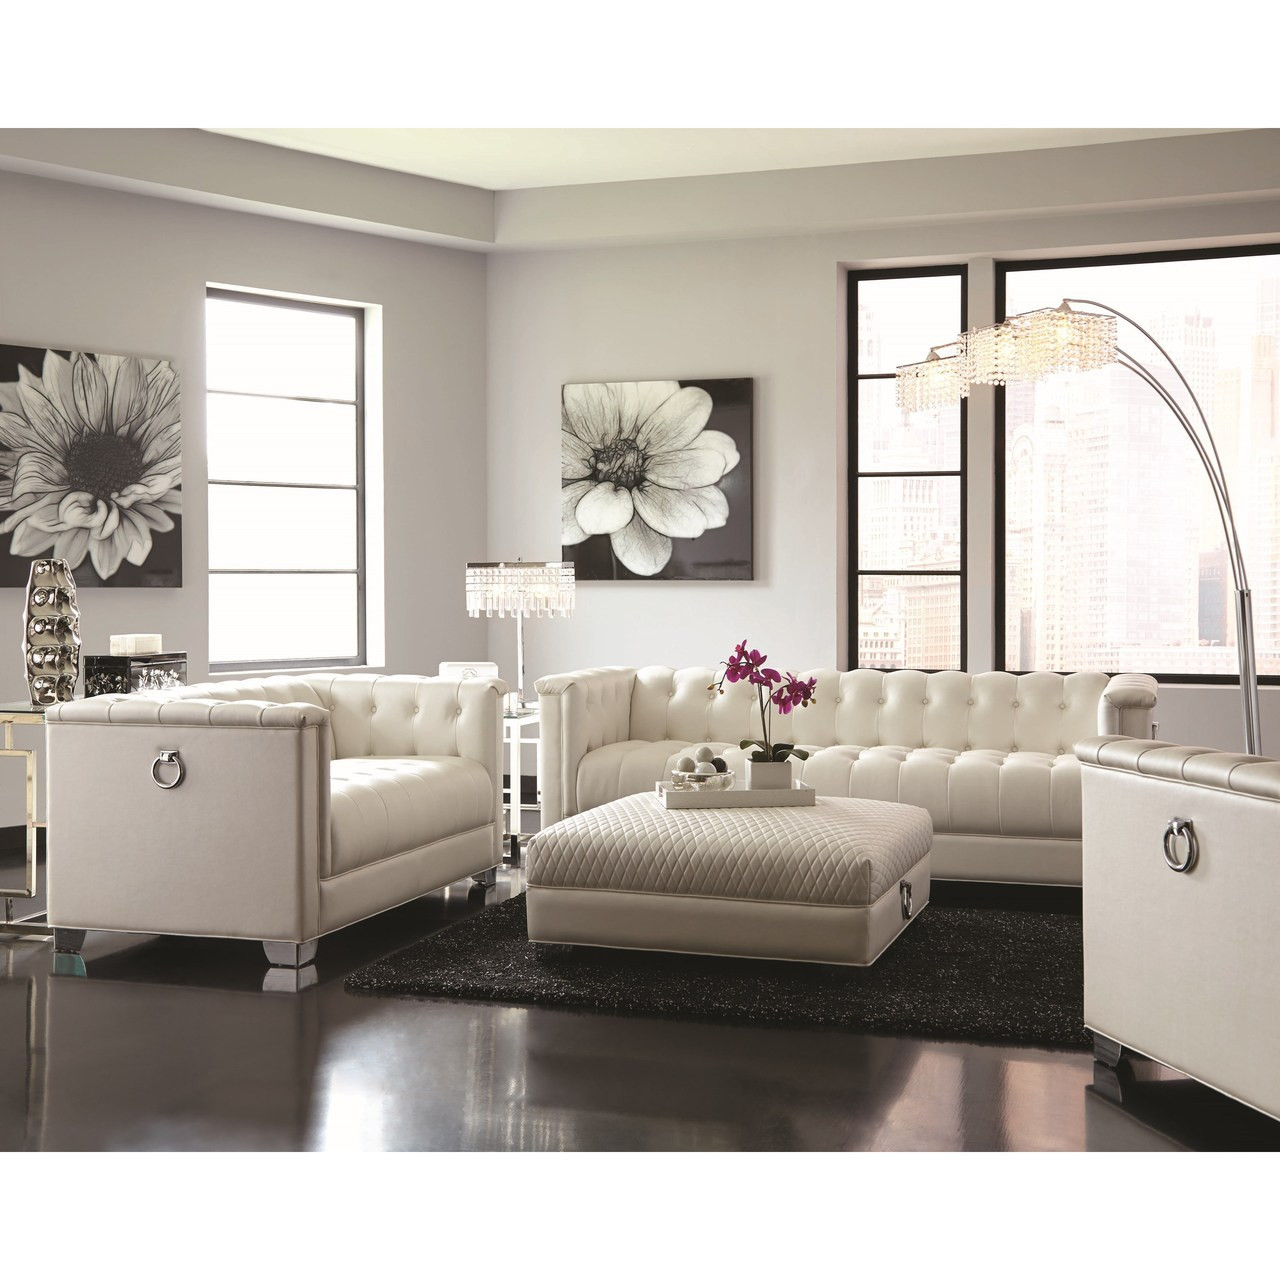 white tufted chair life chairs for elderly coaster milan button in pearl dealbeds com 505393